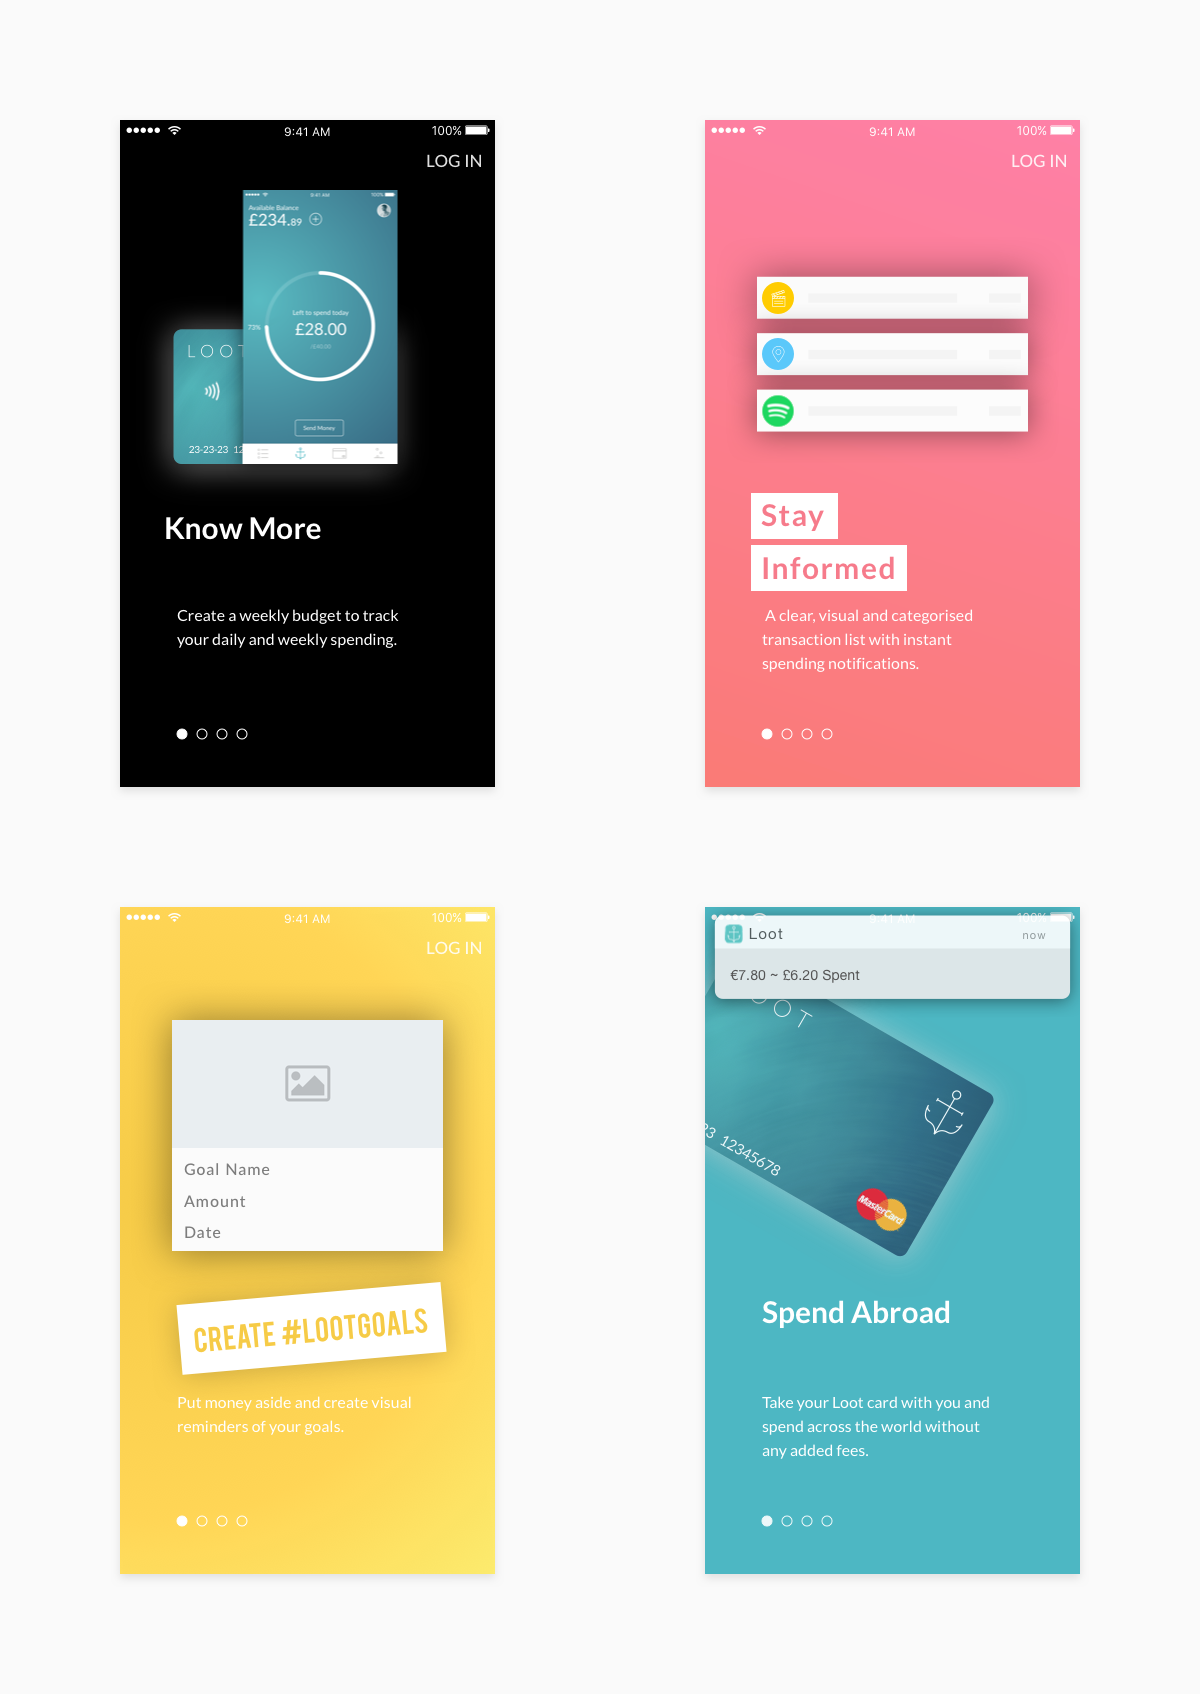 A showcase of the new onboarding screens